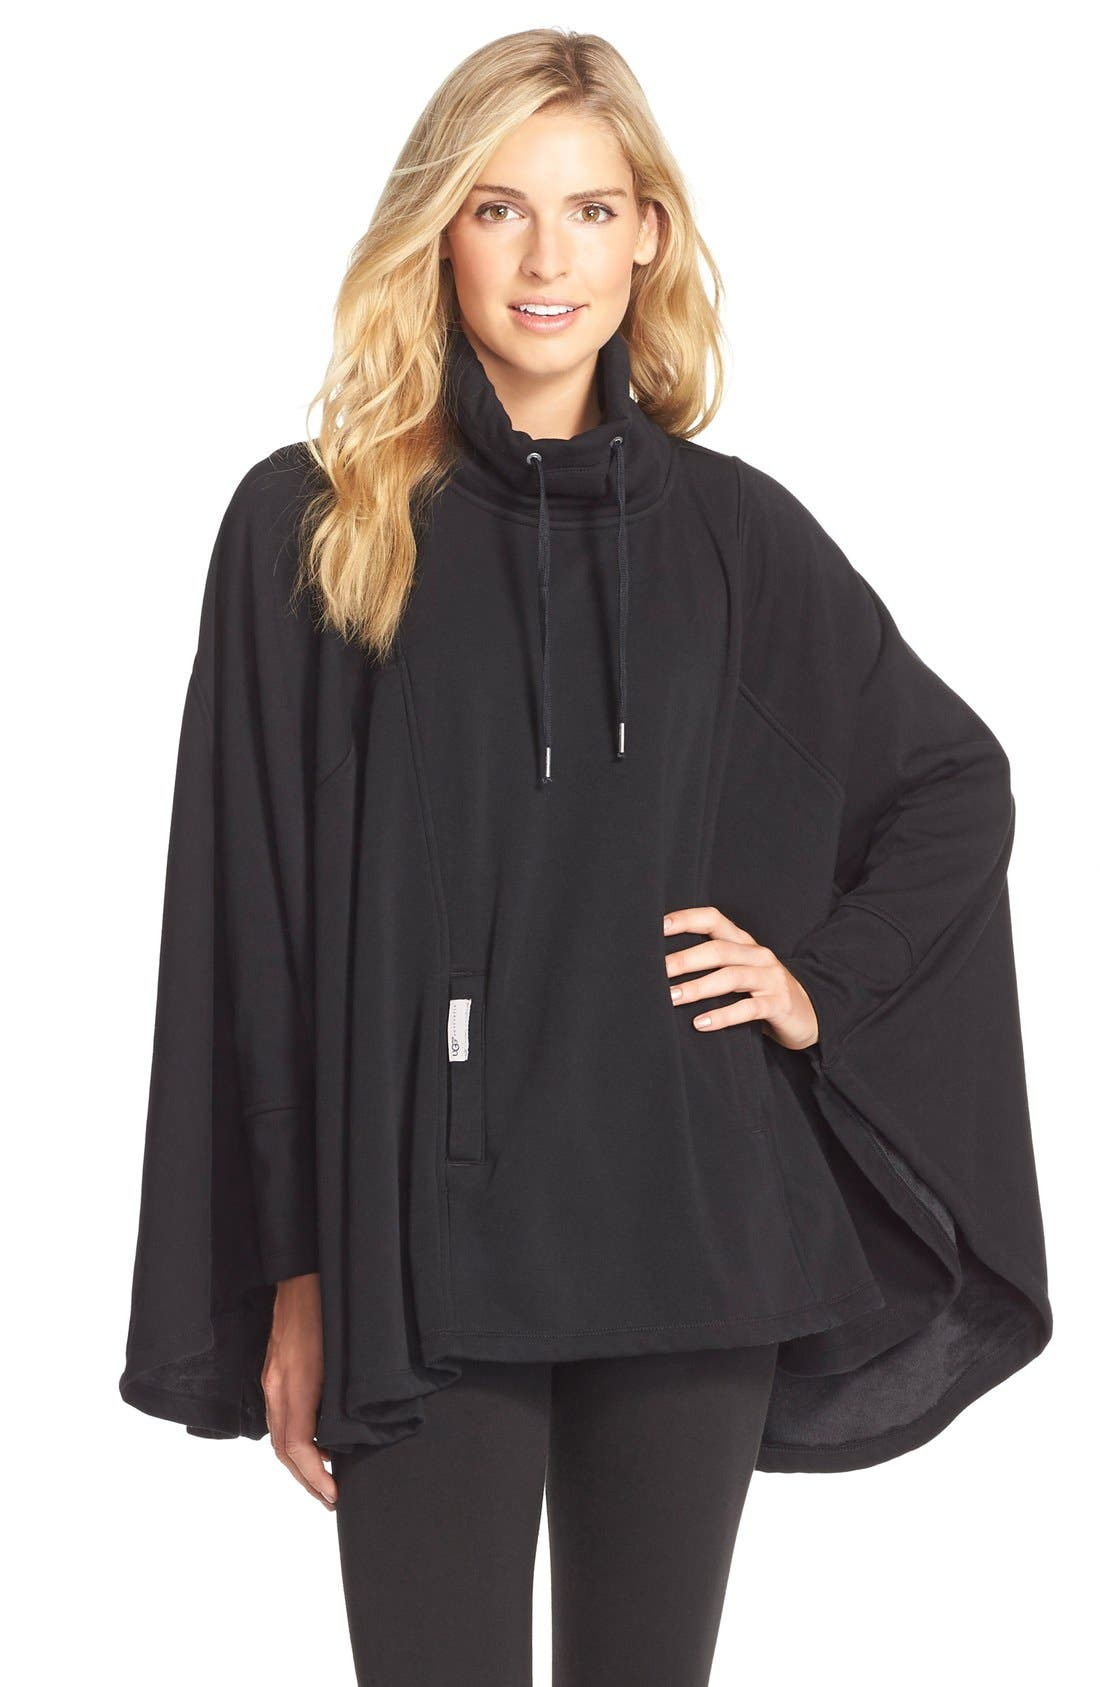 Pichot Turtleneck Poncho,                         Main,                         color, BLACK